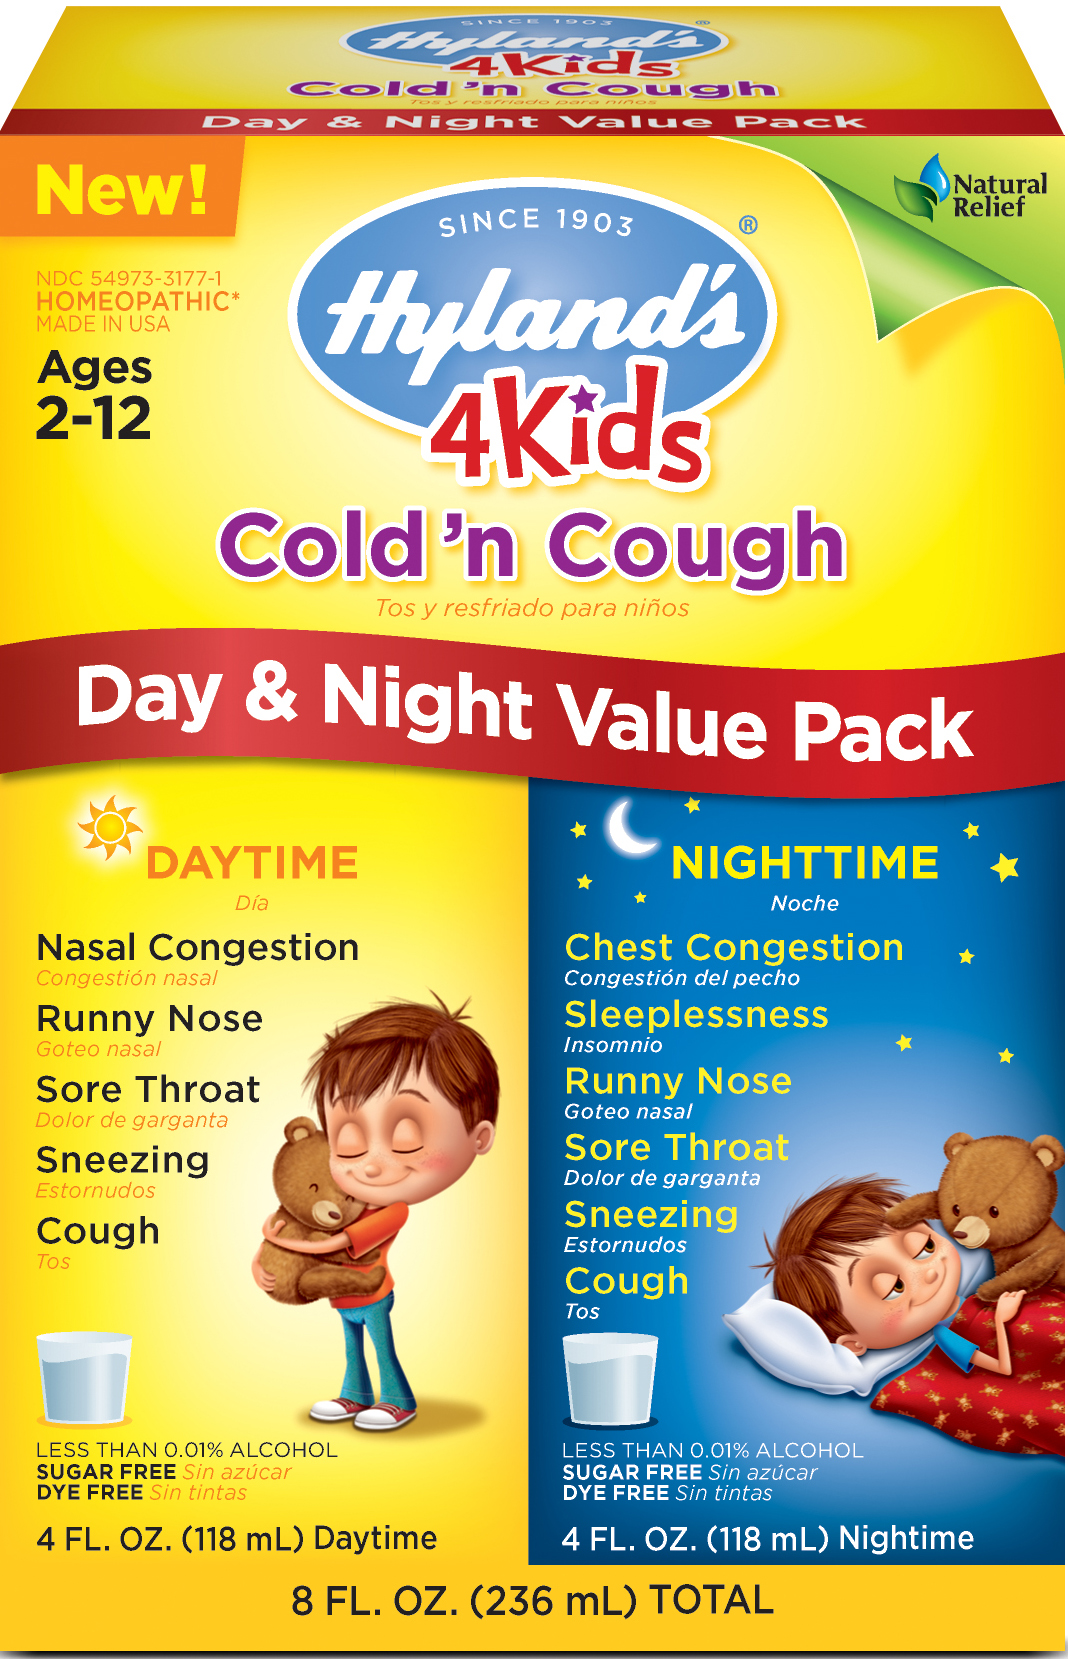 Hyland's 4 Kids Cold 'n Cough Day & Night Value Pack by Hyland's Inc